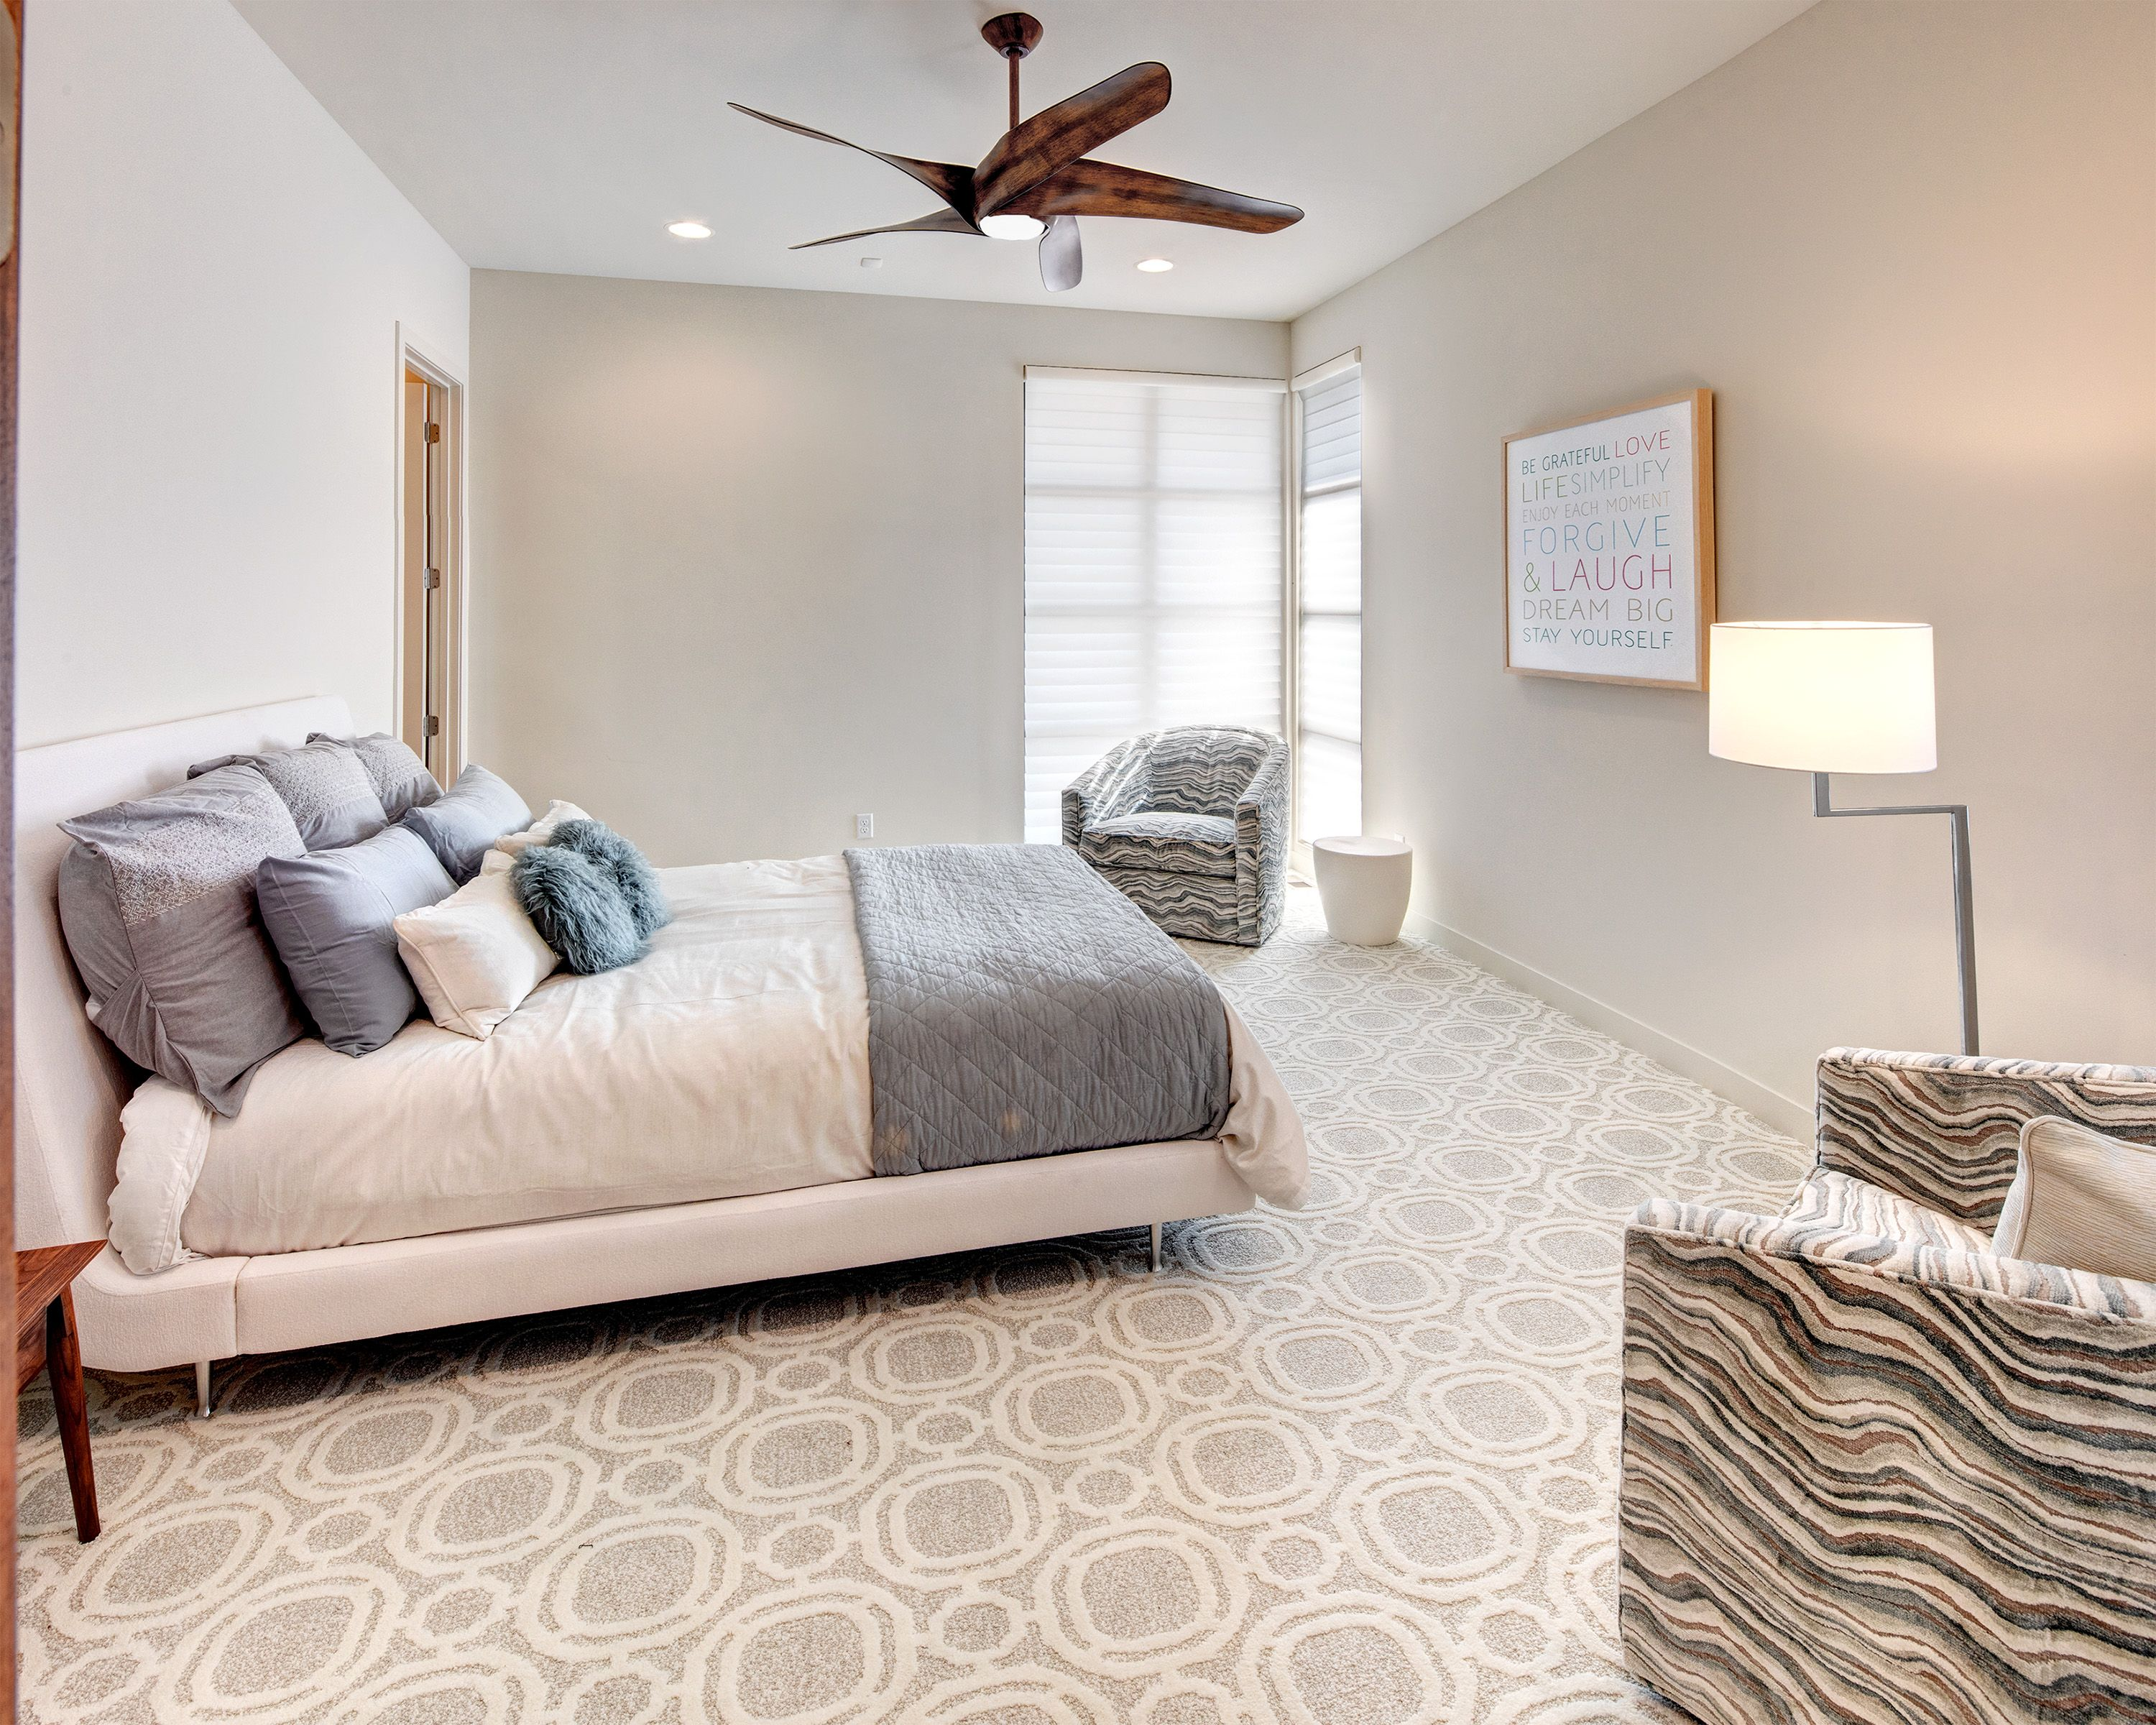 Guest Room Luxury house plans, Home, Furniture